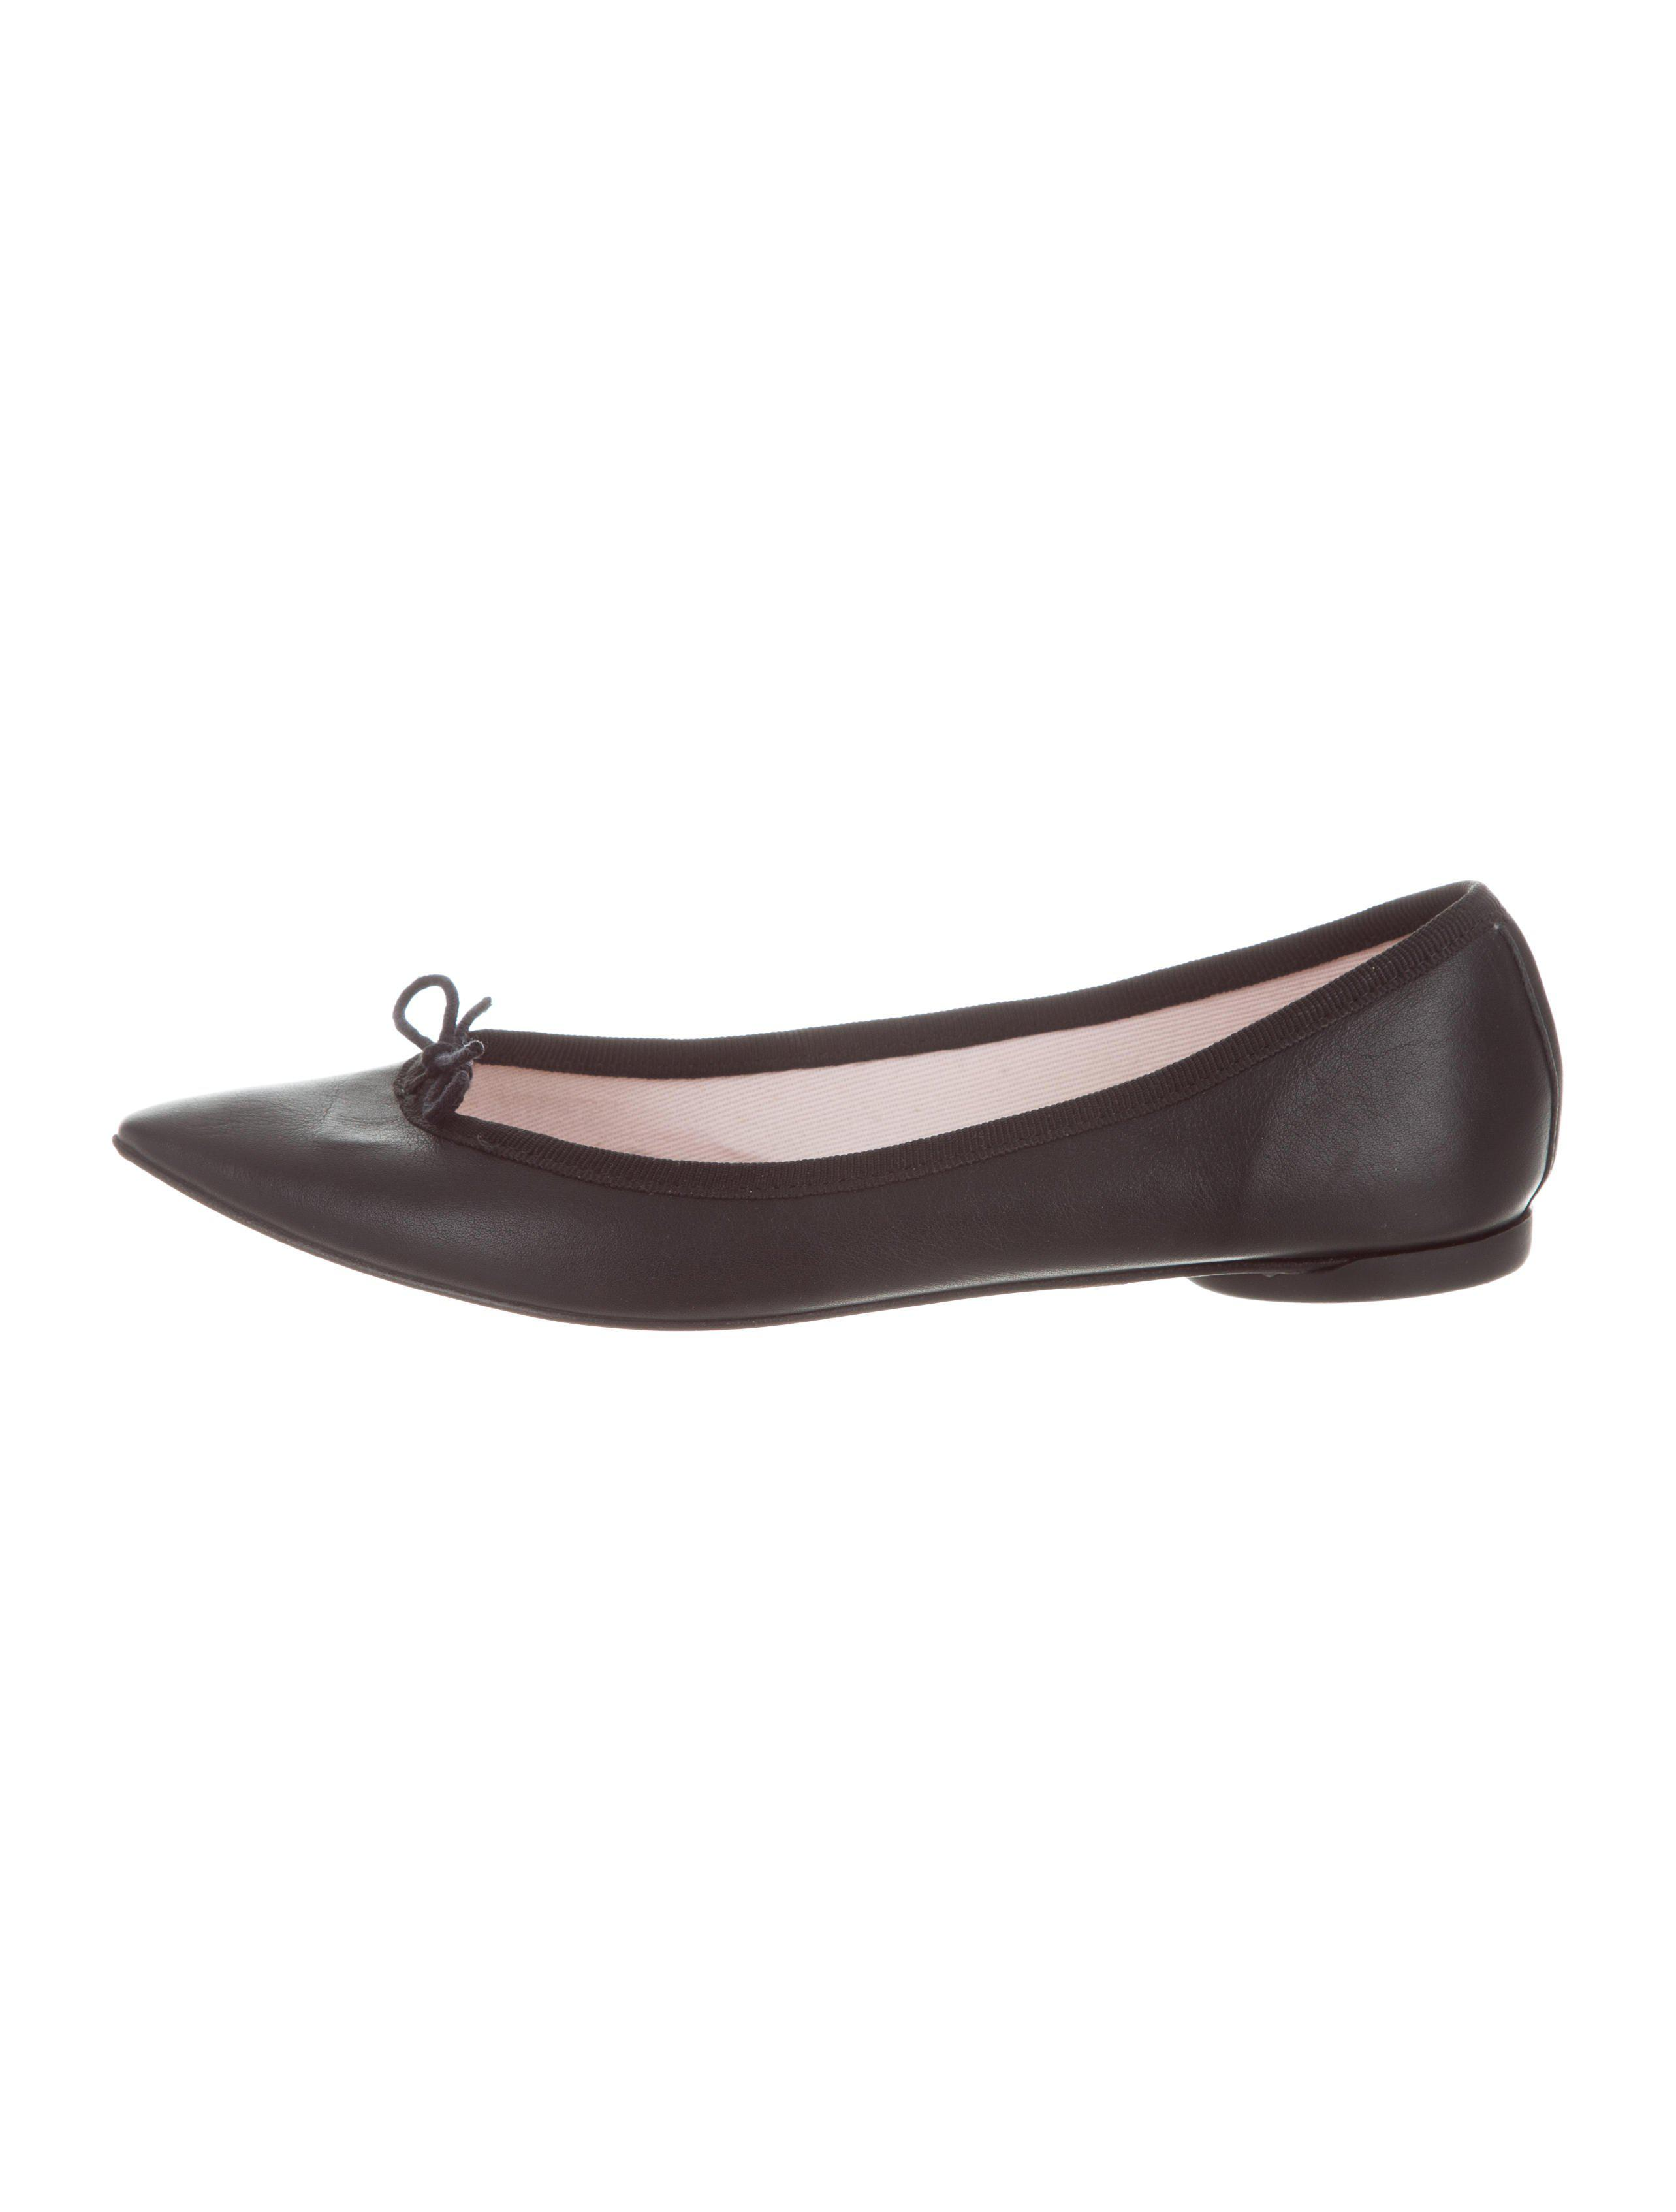 cheap Manchester Repetto Patent Leather Pointed-Toe Flats w/ Tags amazing price cheap price sale 100% guaranteed iFWlPLSIT